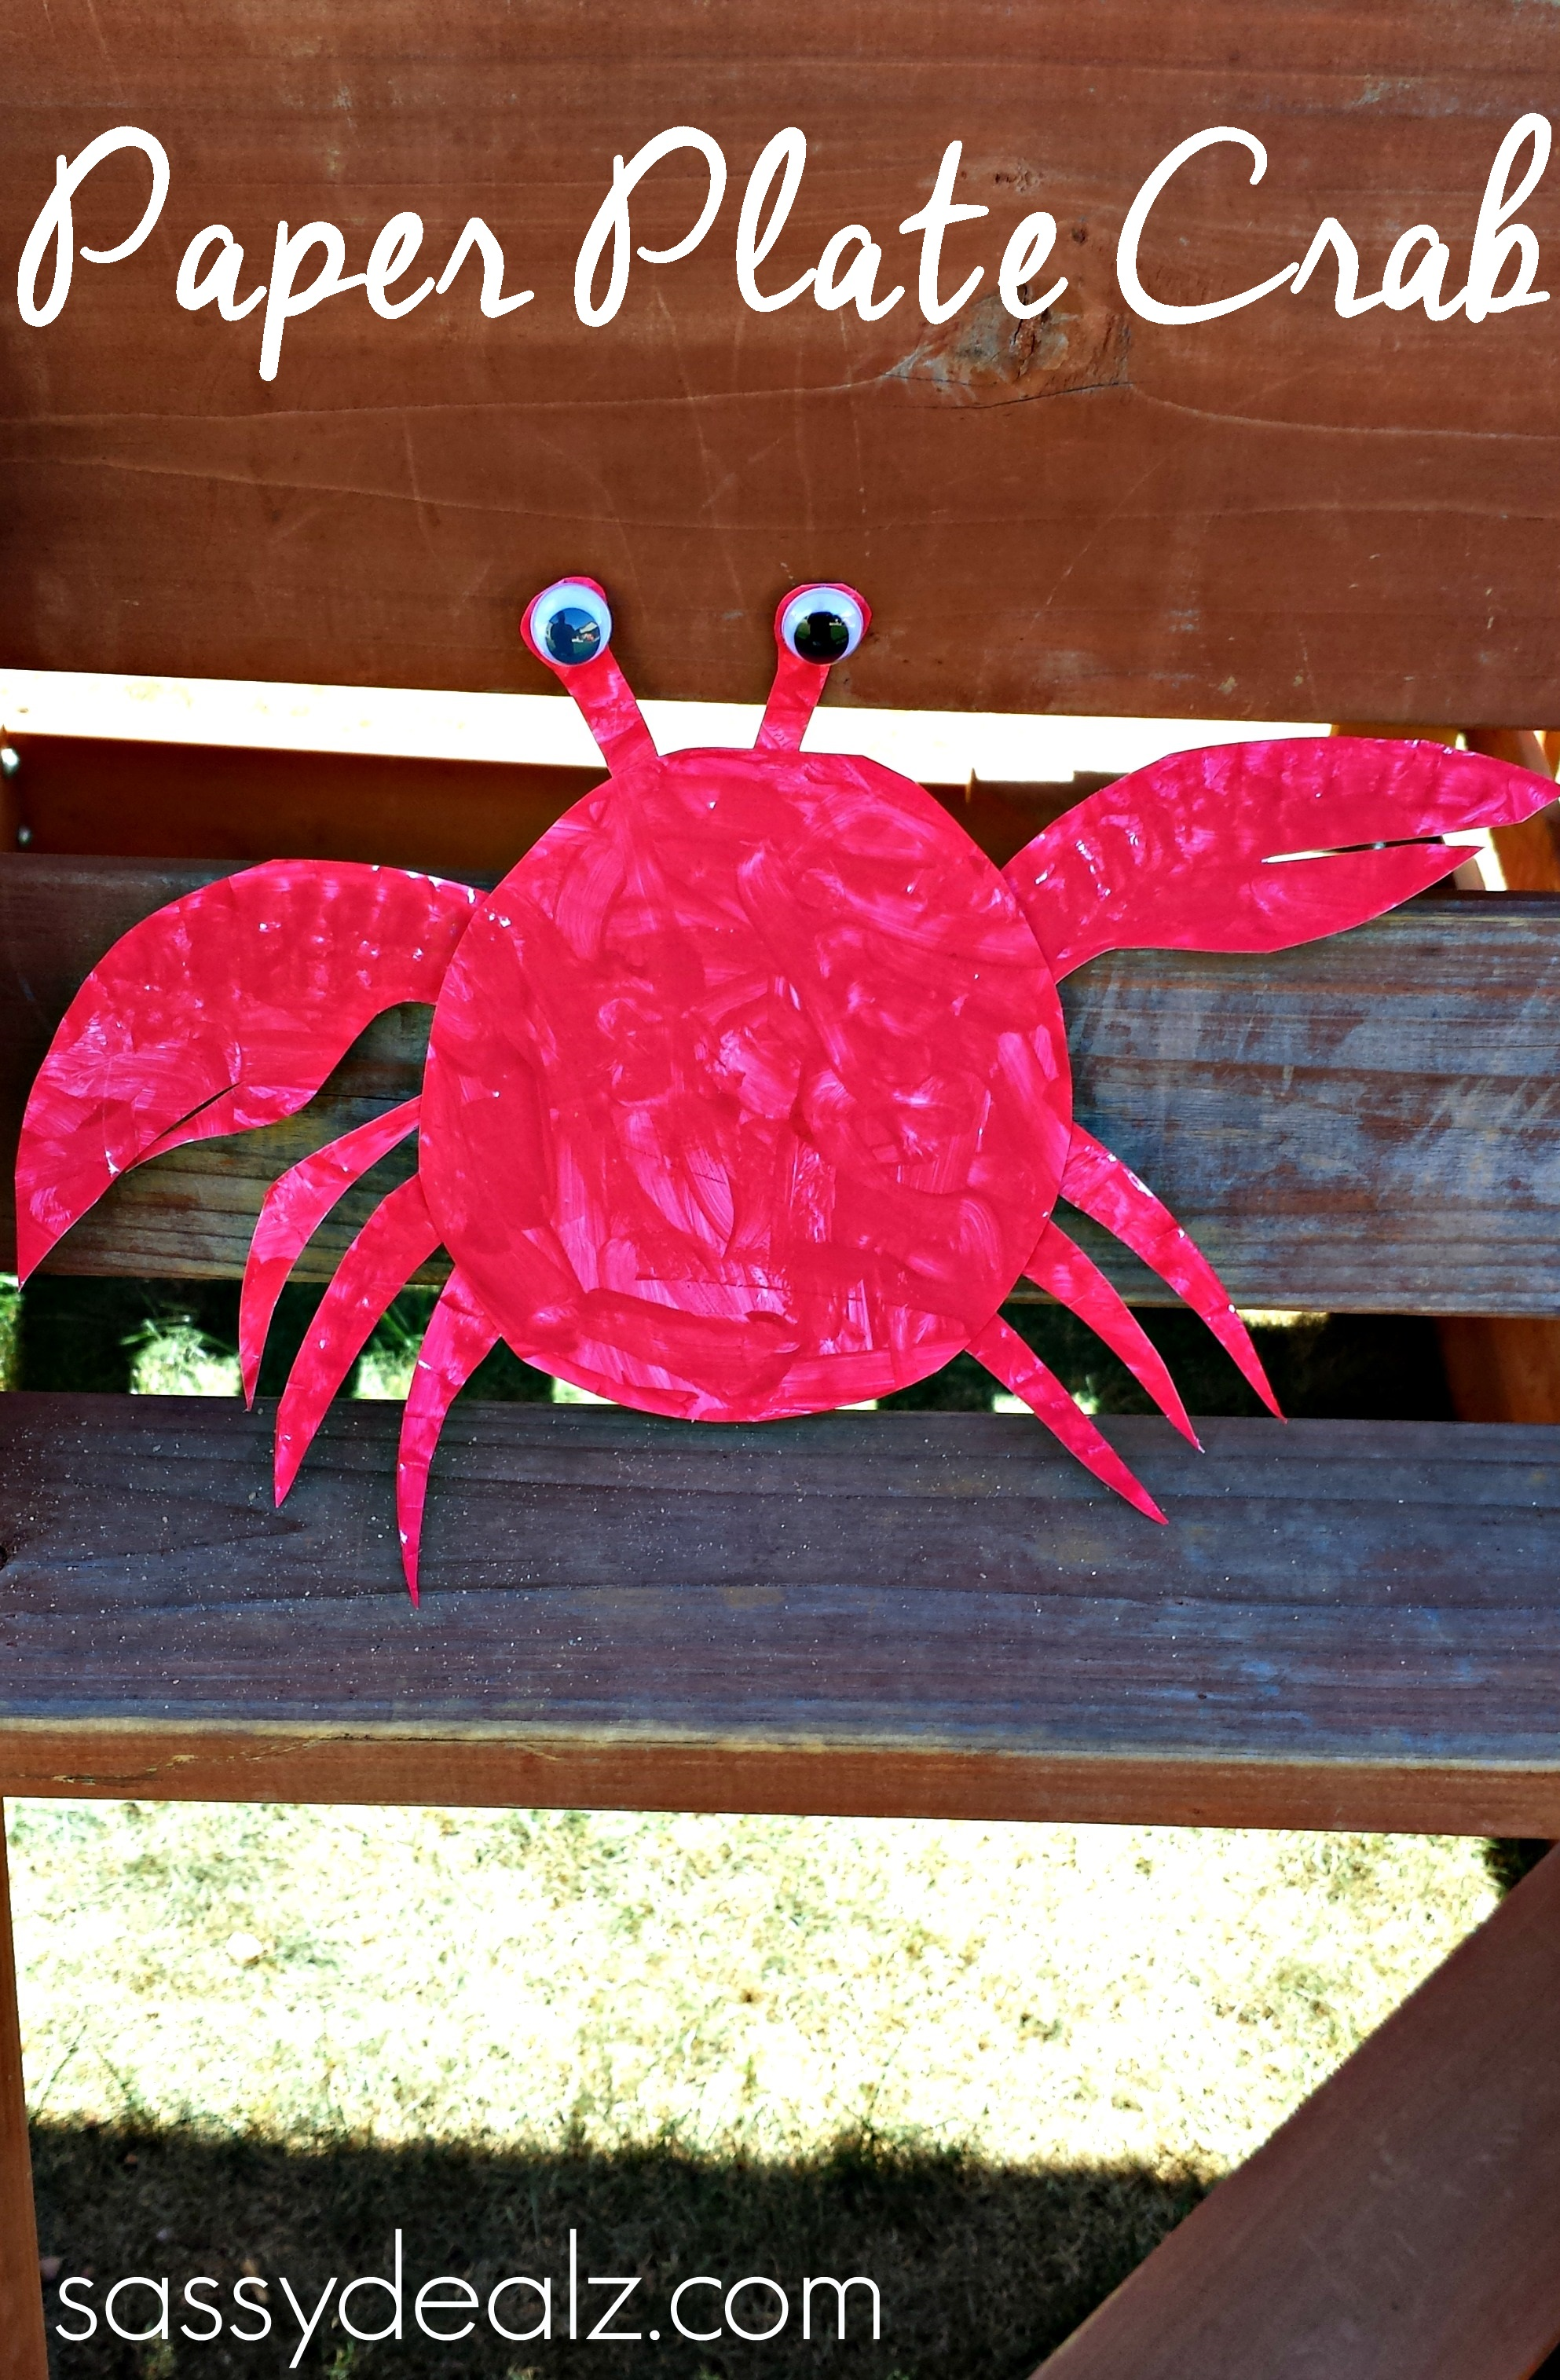 crab-paper-plate-crafts-kids & Paper Plate Crab Craft For Kids - Crafty Morning